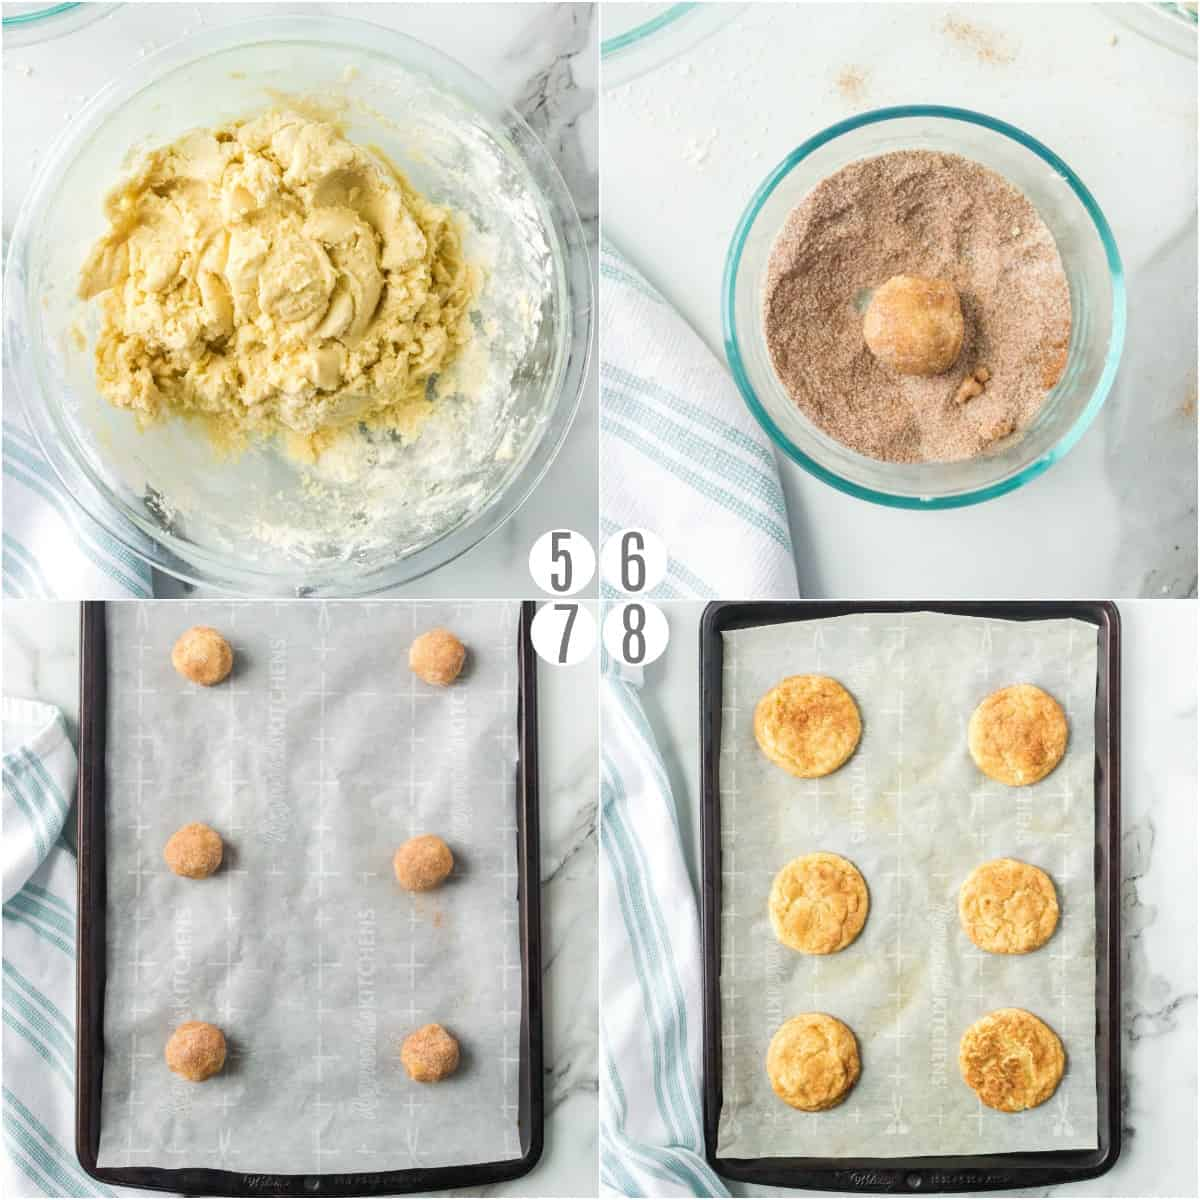 Step by step photos showing how to bake snickerdoodles with cinnamon sugar coating.